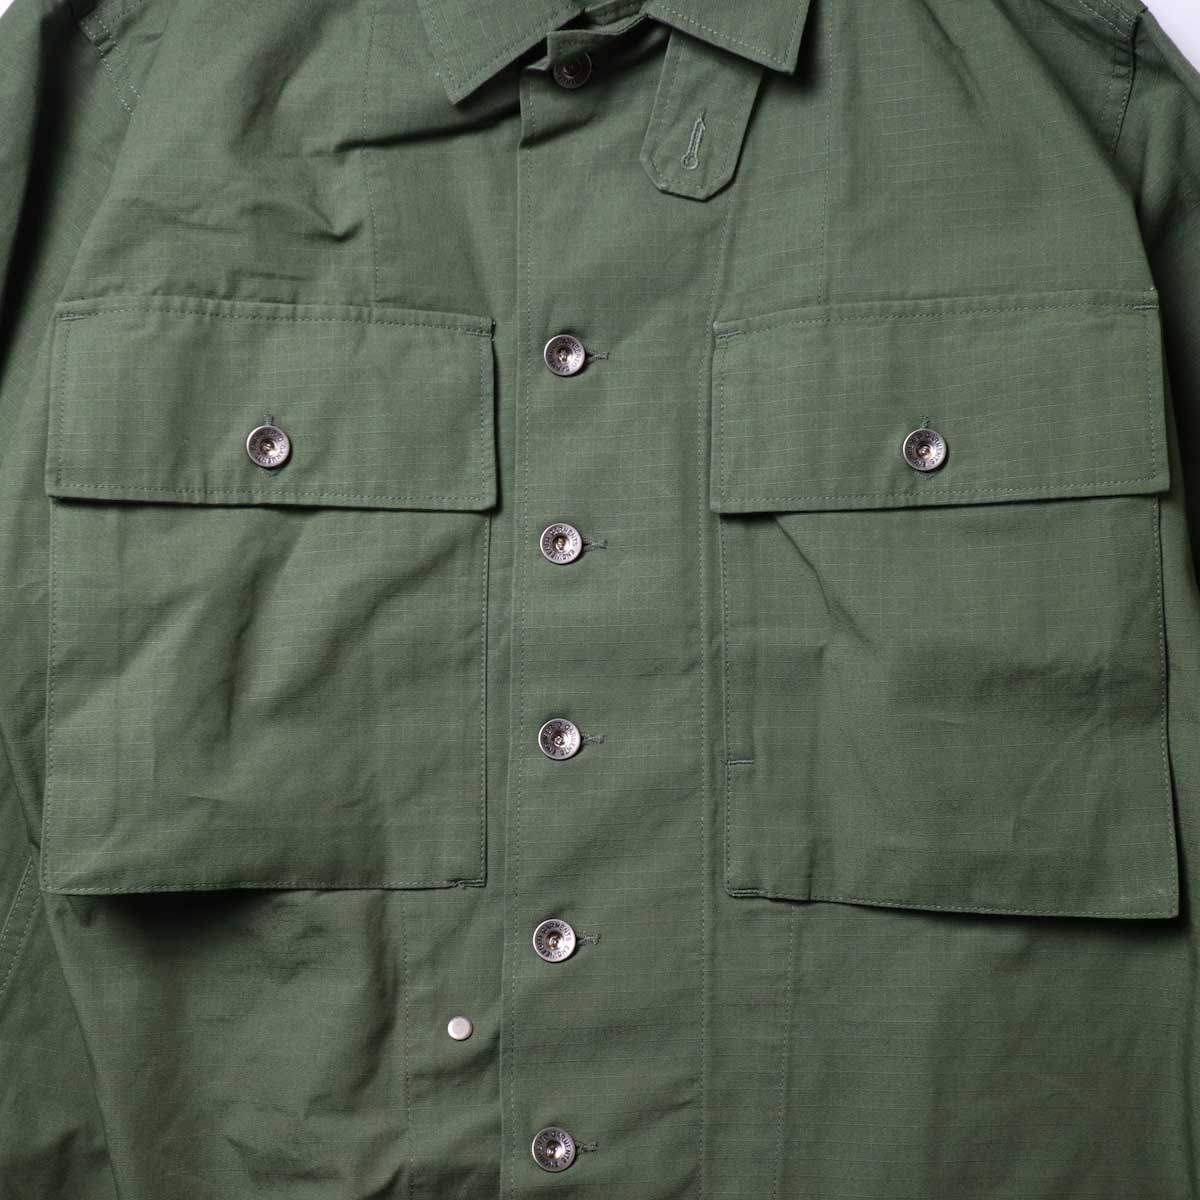 Engineered Garments / M43/2 Shirt Jacket -Cotton Ripstop (Olive)ポケット